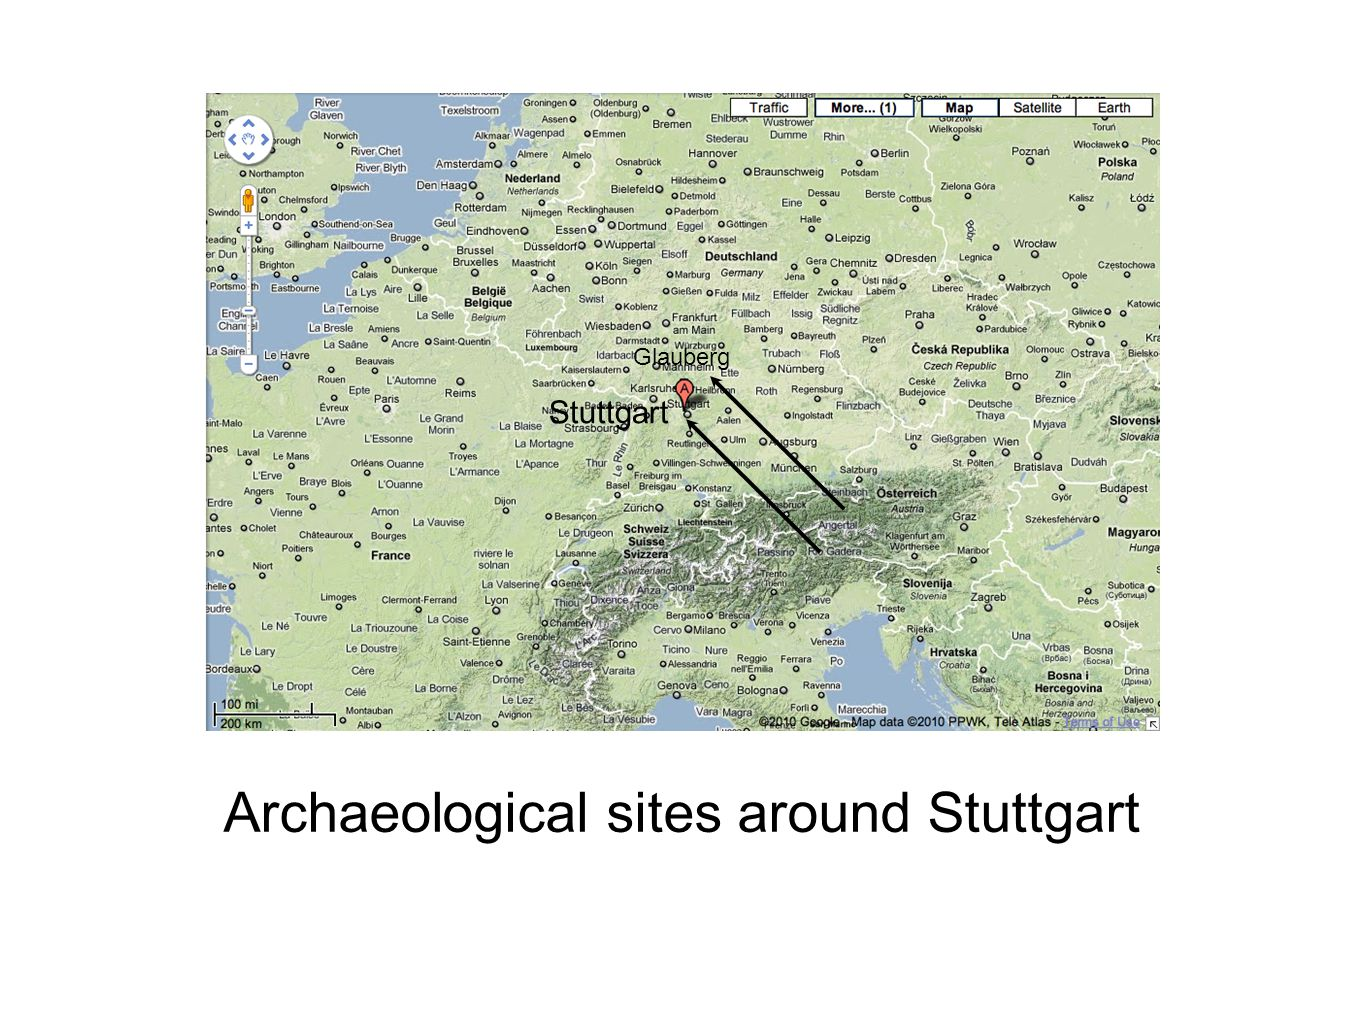 Archaeological sites around Stuttgart